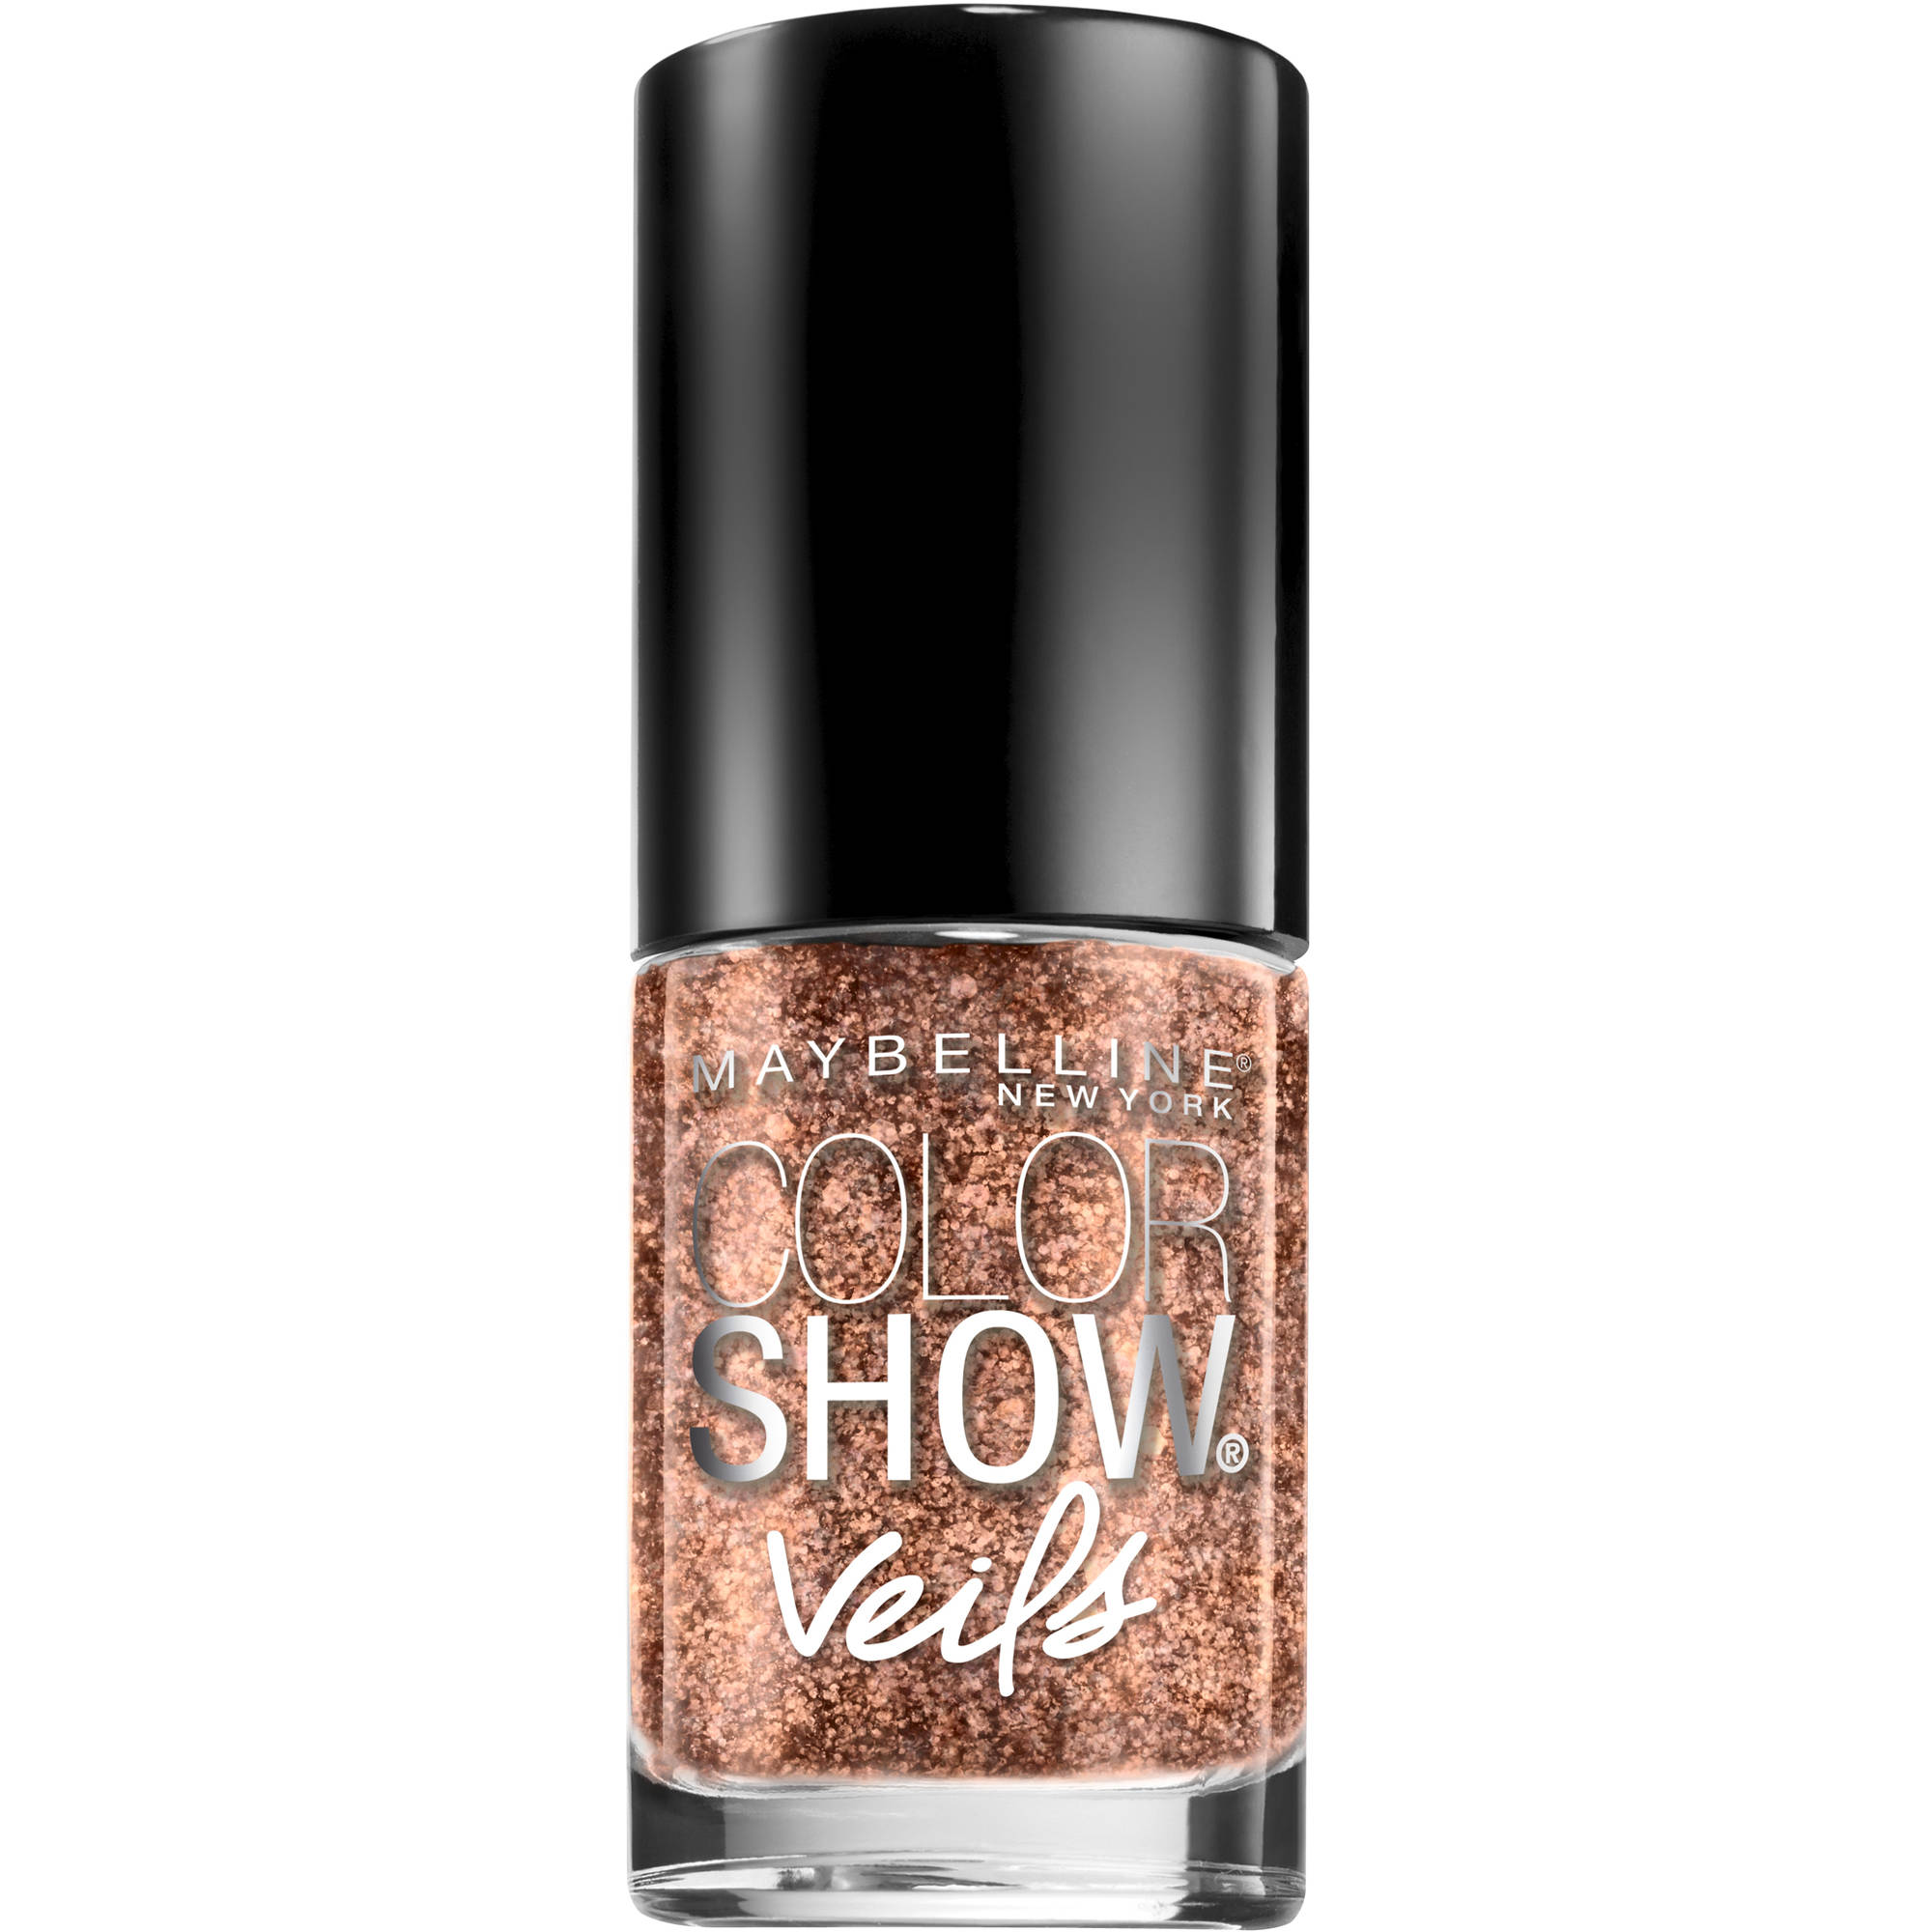 Maybelline New York Color Show Veils Nail Lacquer Top Coat, Rose Mirage, 0.23 fl oz, Rose Mirage